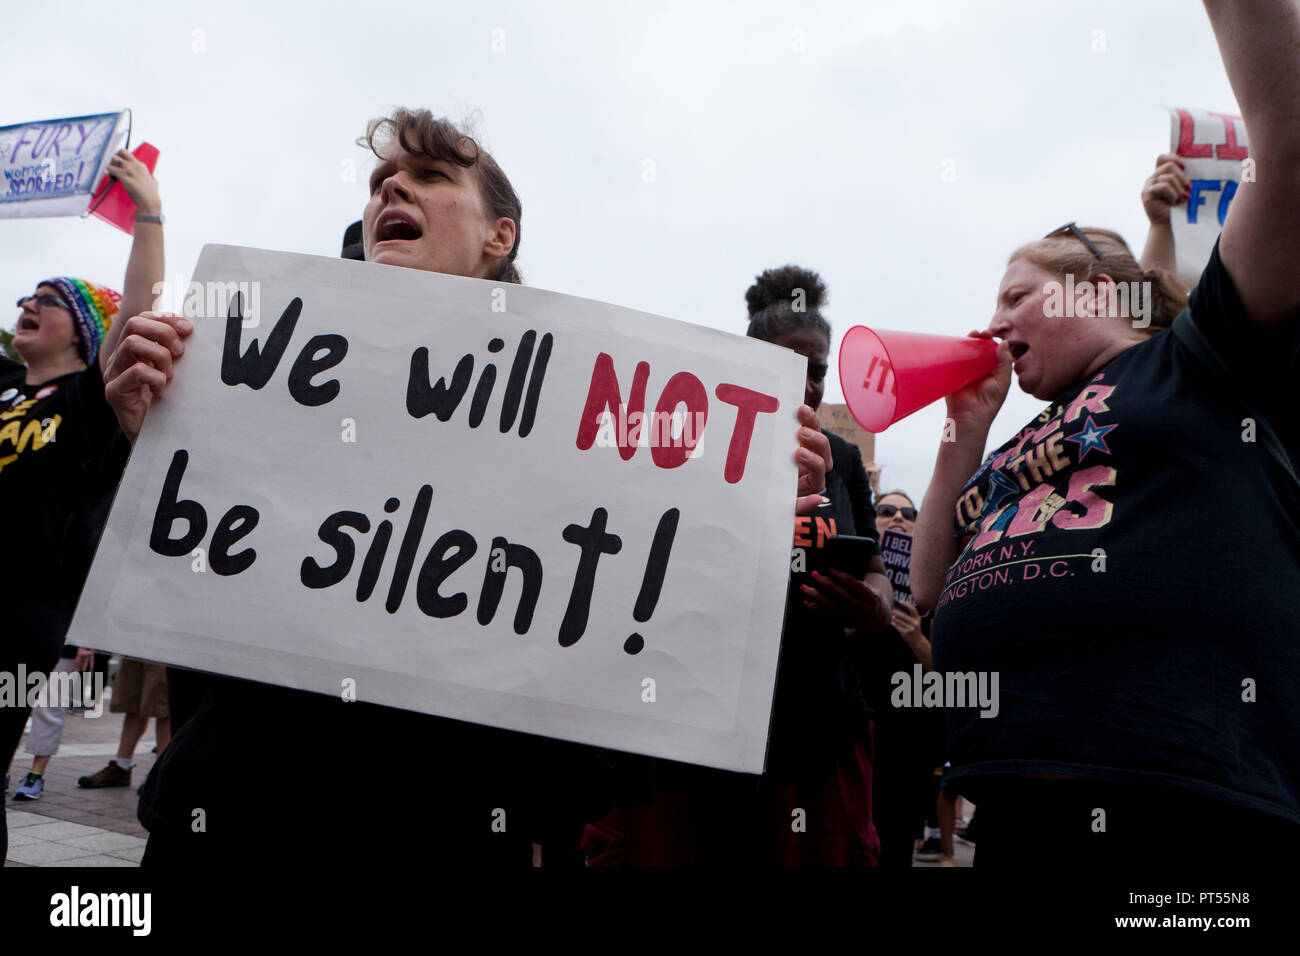 Washington, USA, 6th Oct, 2018: On the day of the final vote to confirm Brett Kavanaugh to the US Supreme Court, thousands of democrat activists protest in front of the Supreme Court building and the US Capitol. Pictured: woman holding sign which reads ' We Will Not Be Silent.'  Credit: B Christopher/Alamy Live News - Stock Image